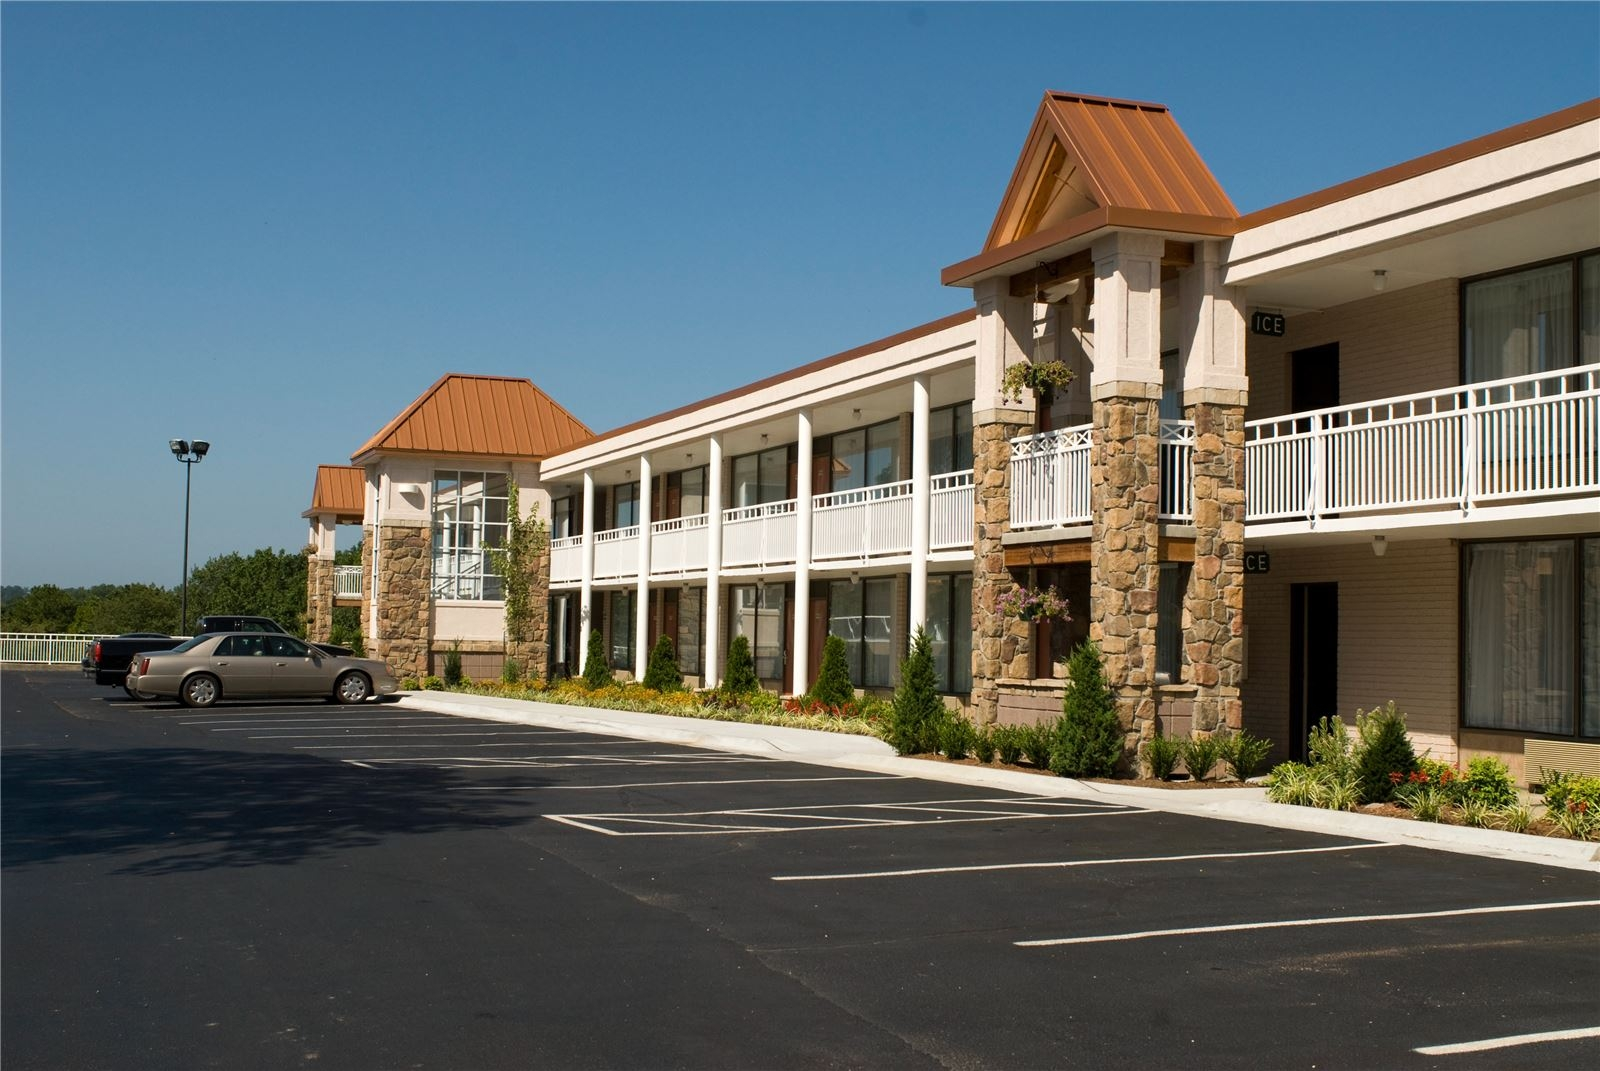 Best Western Inn of the Ozarks